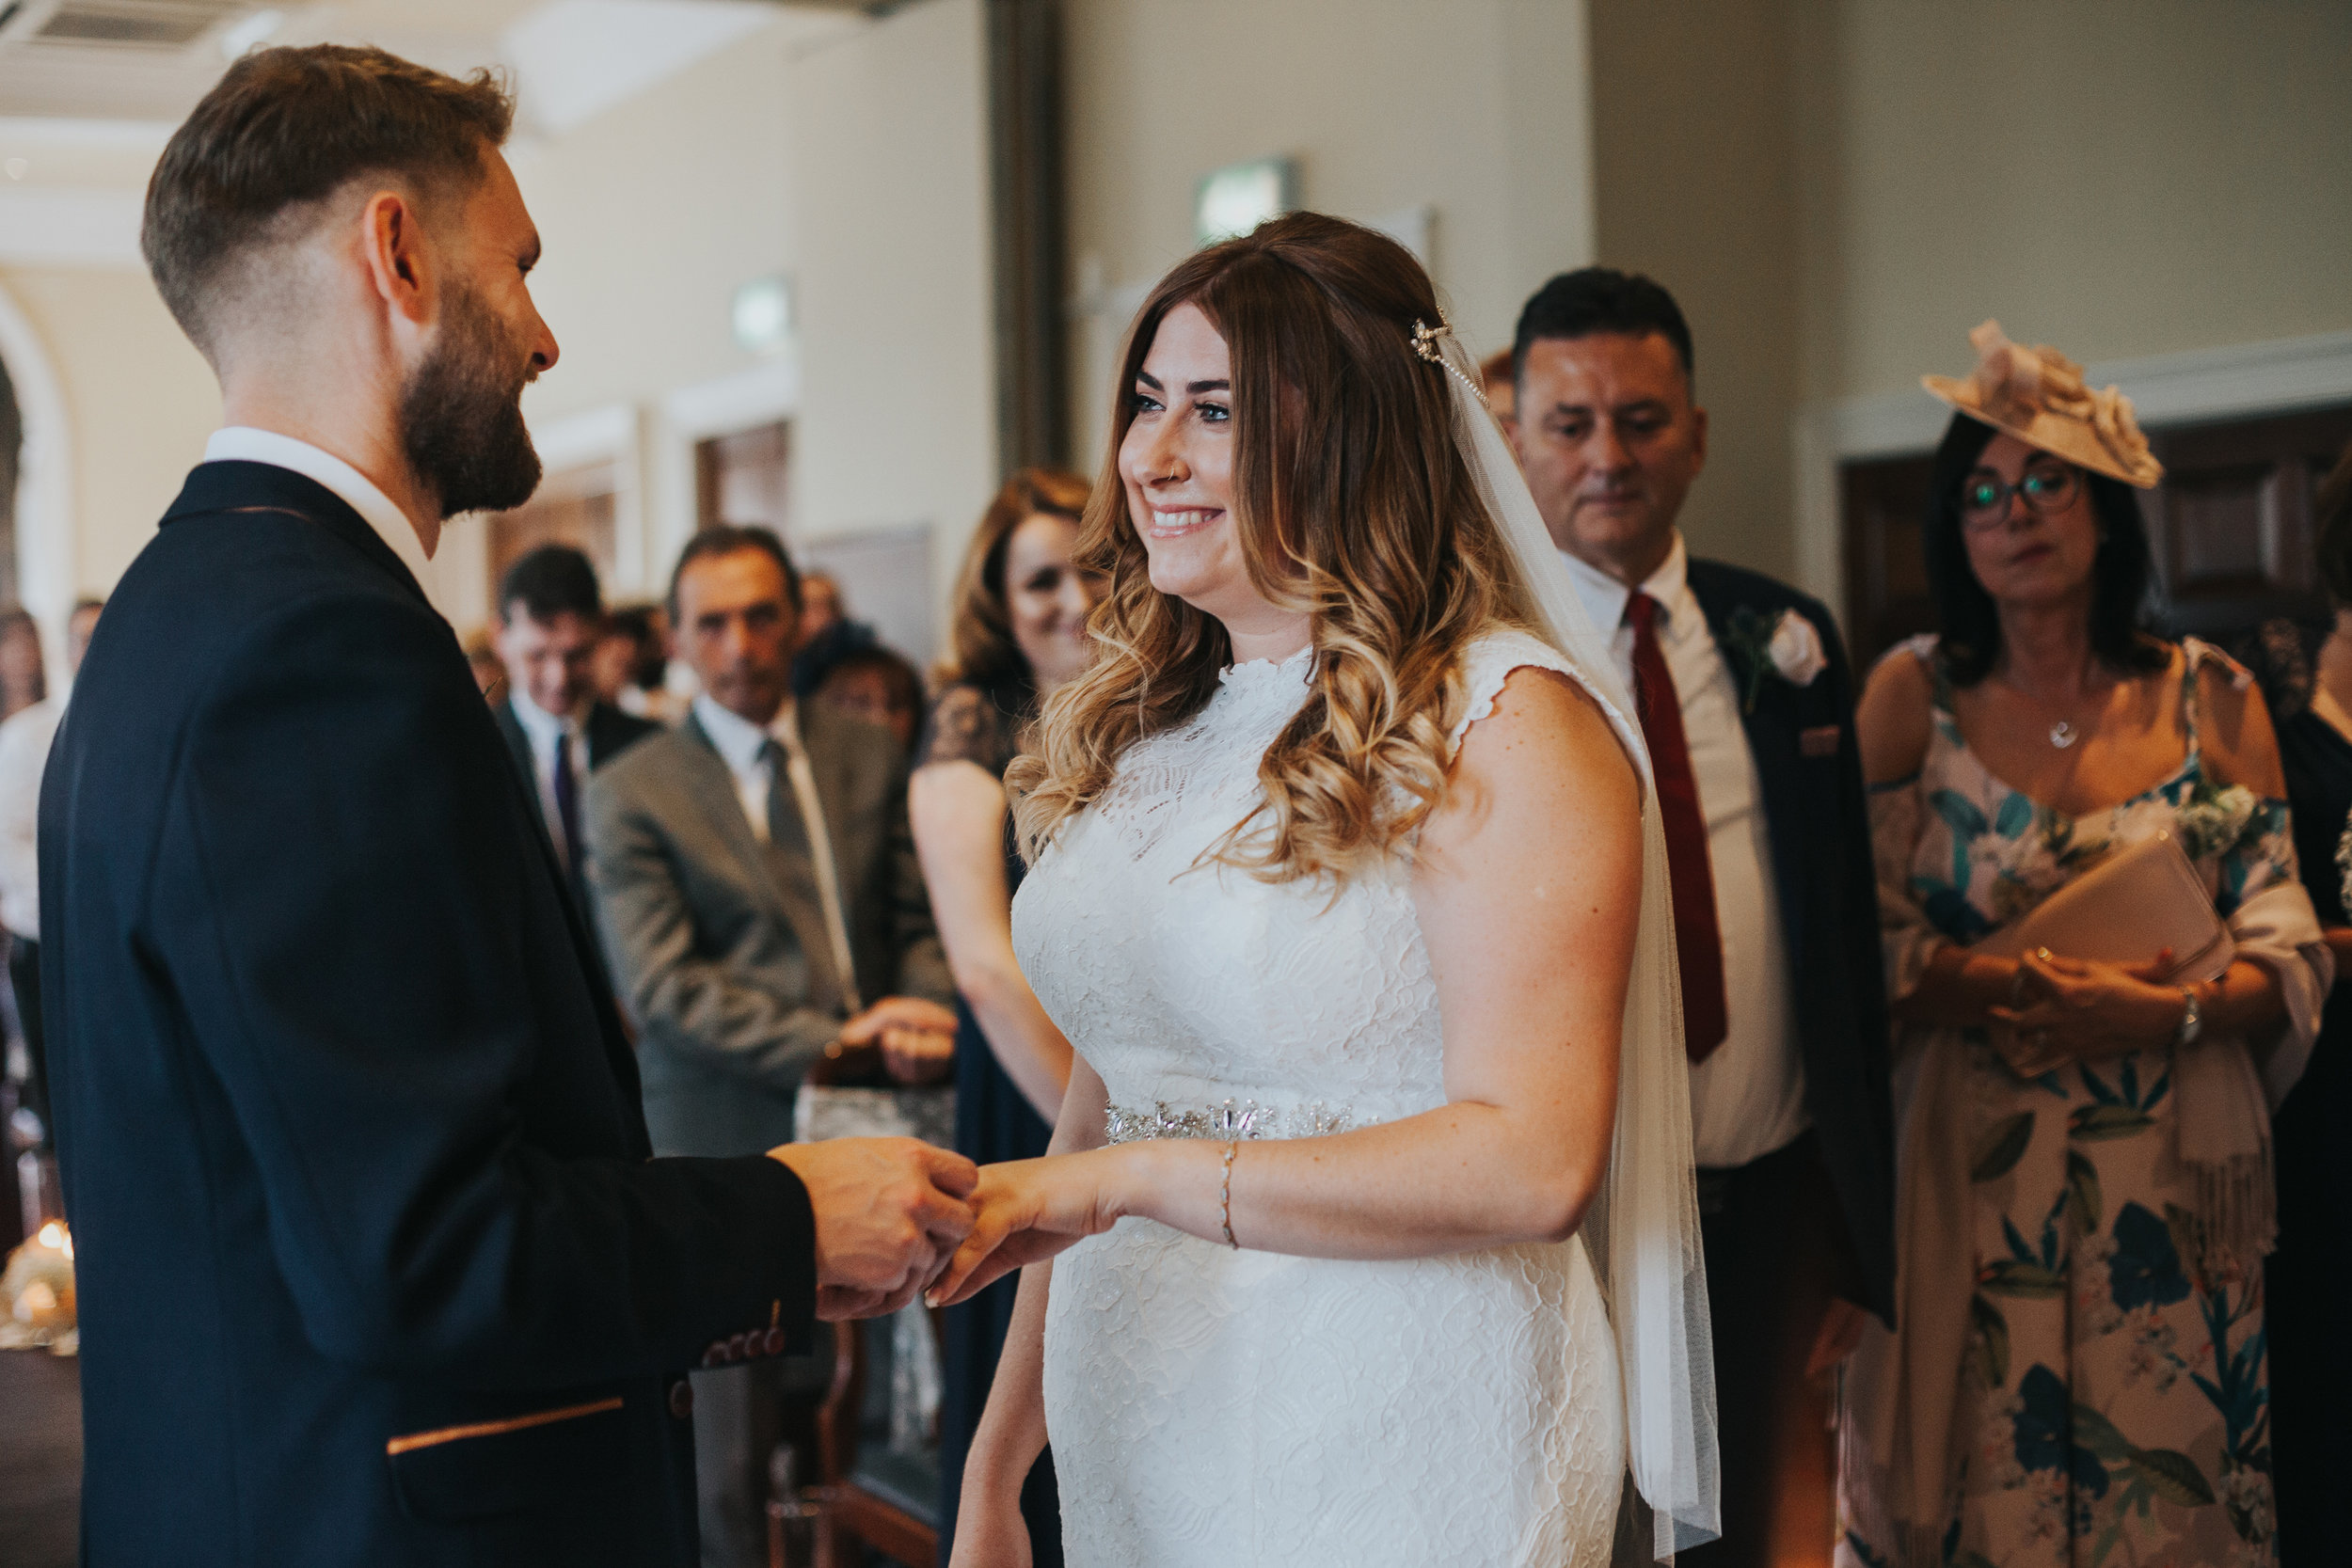 Bride and groom say their wedding vows.